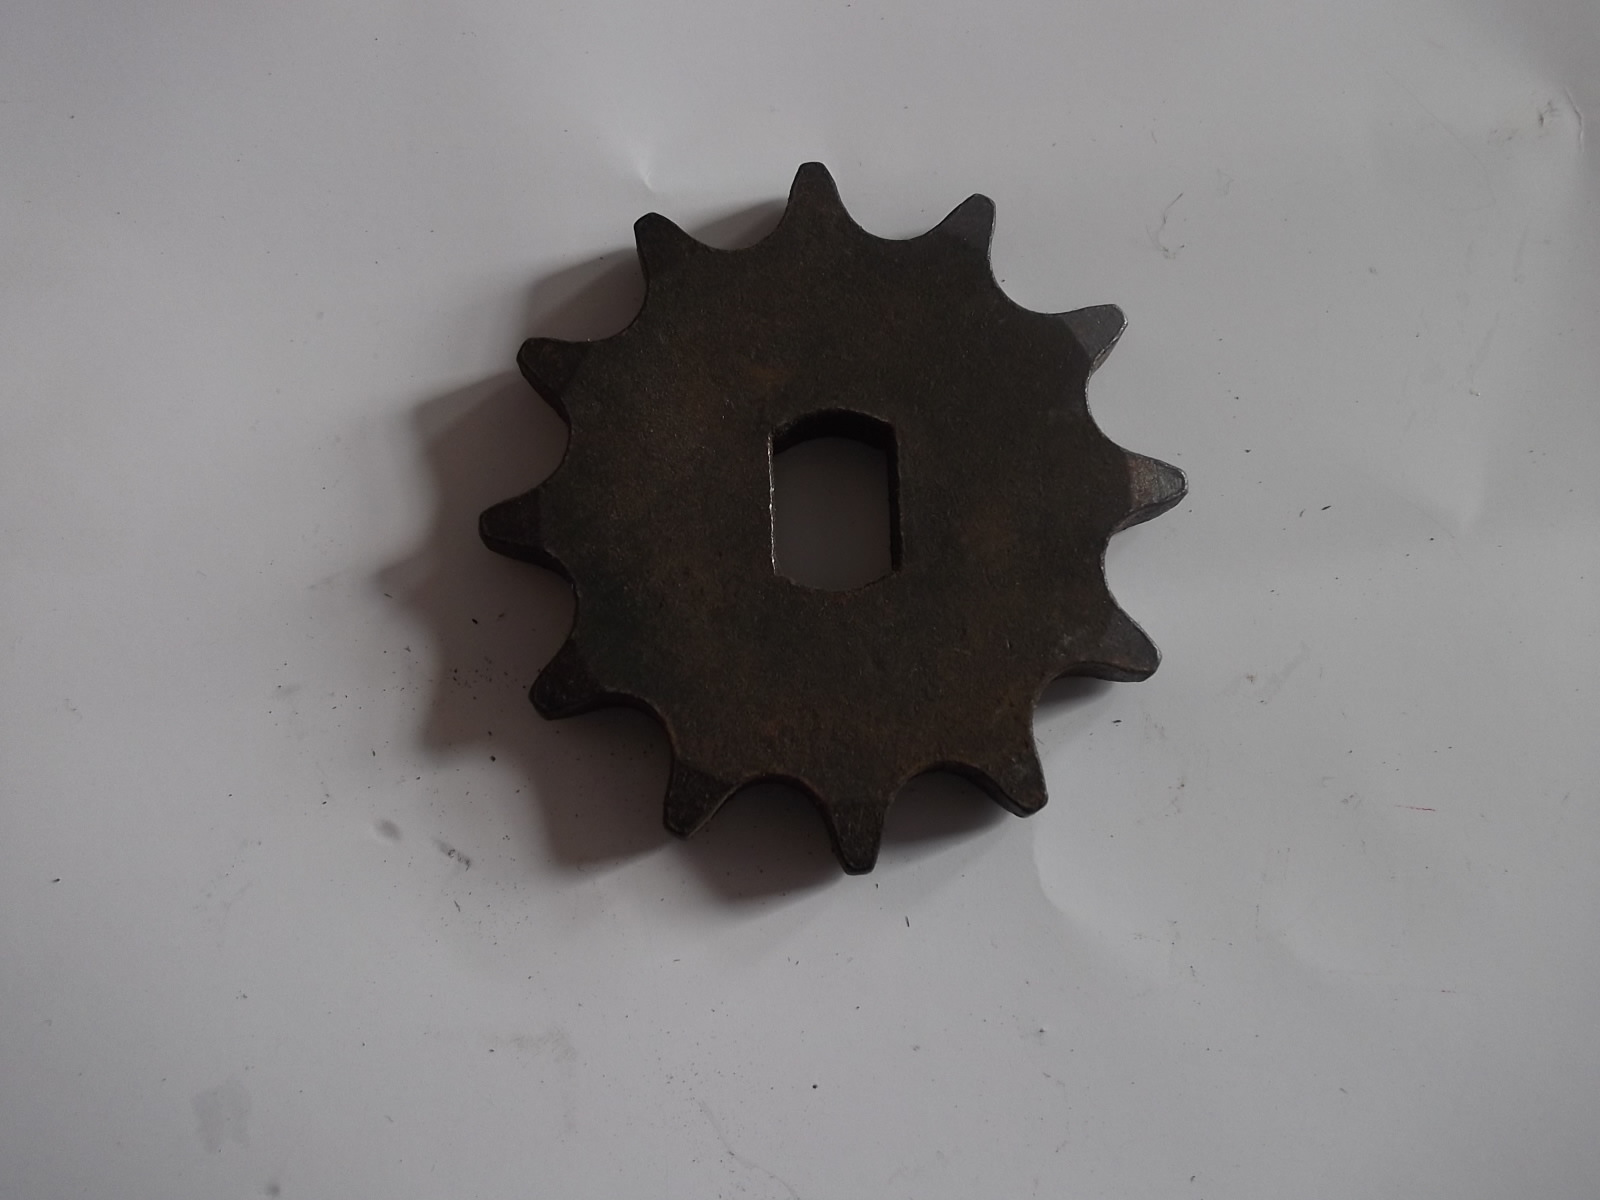 Younet reducer motor 12 tooth sprocket 428 square hole gear